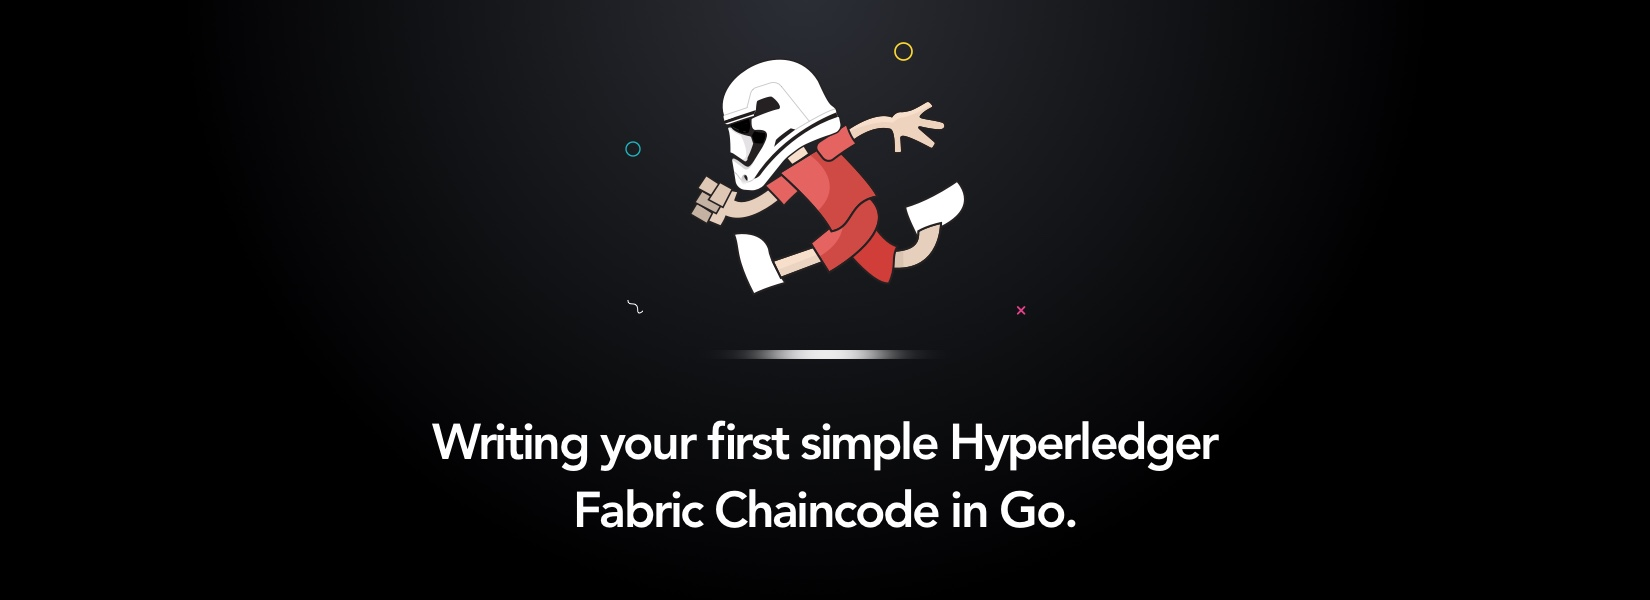 Writing your first simple Hyperledger Fabric Chaincode in Go